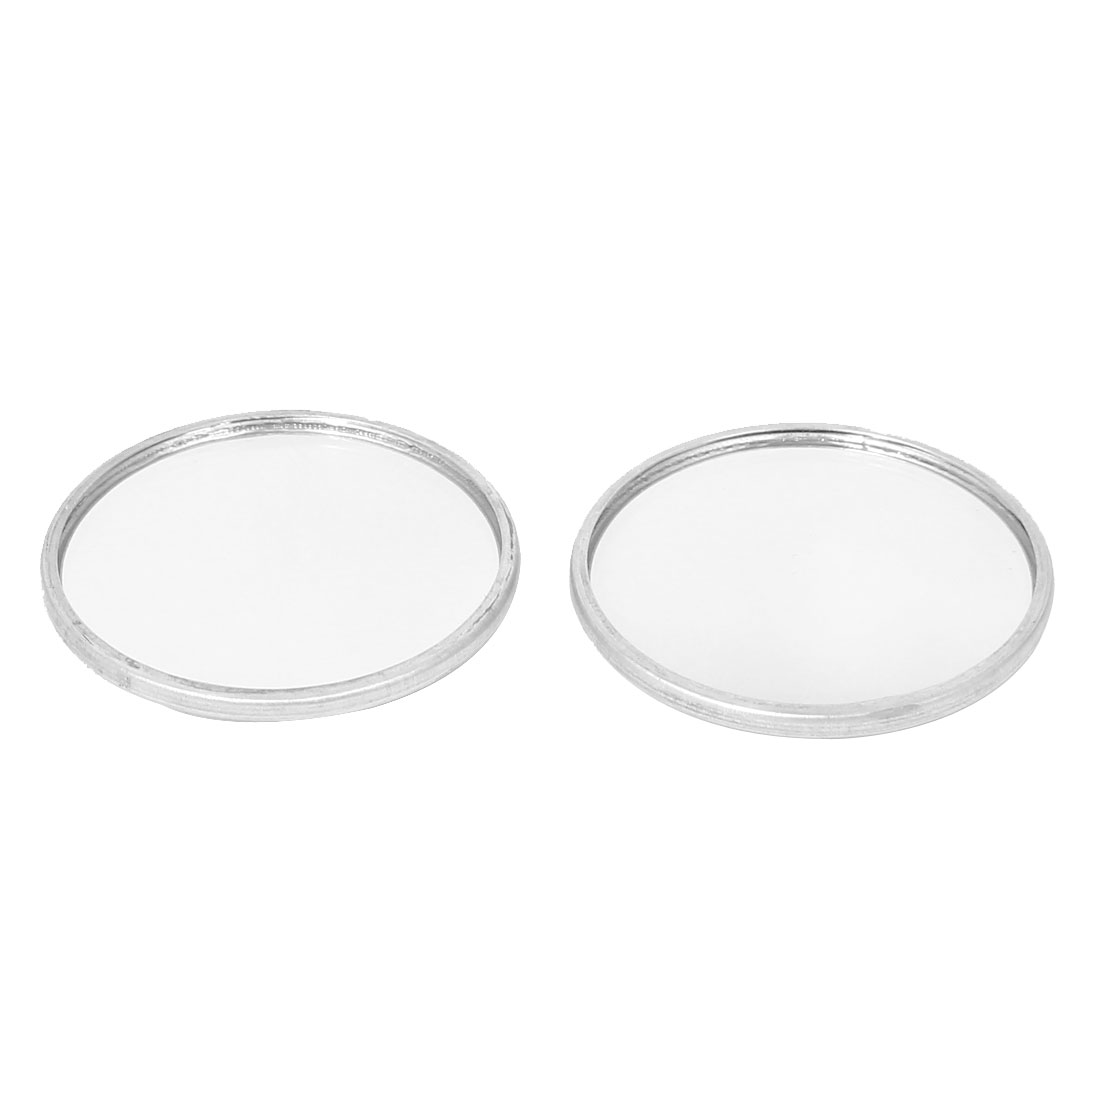 Universal Cars 37mm Dia Stick-on Wide Angle Convex Blind Spot Mirror Silver Tone 2pcs